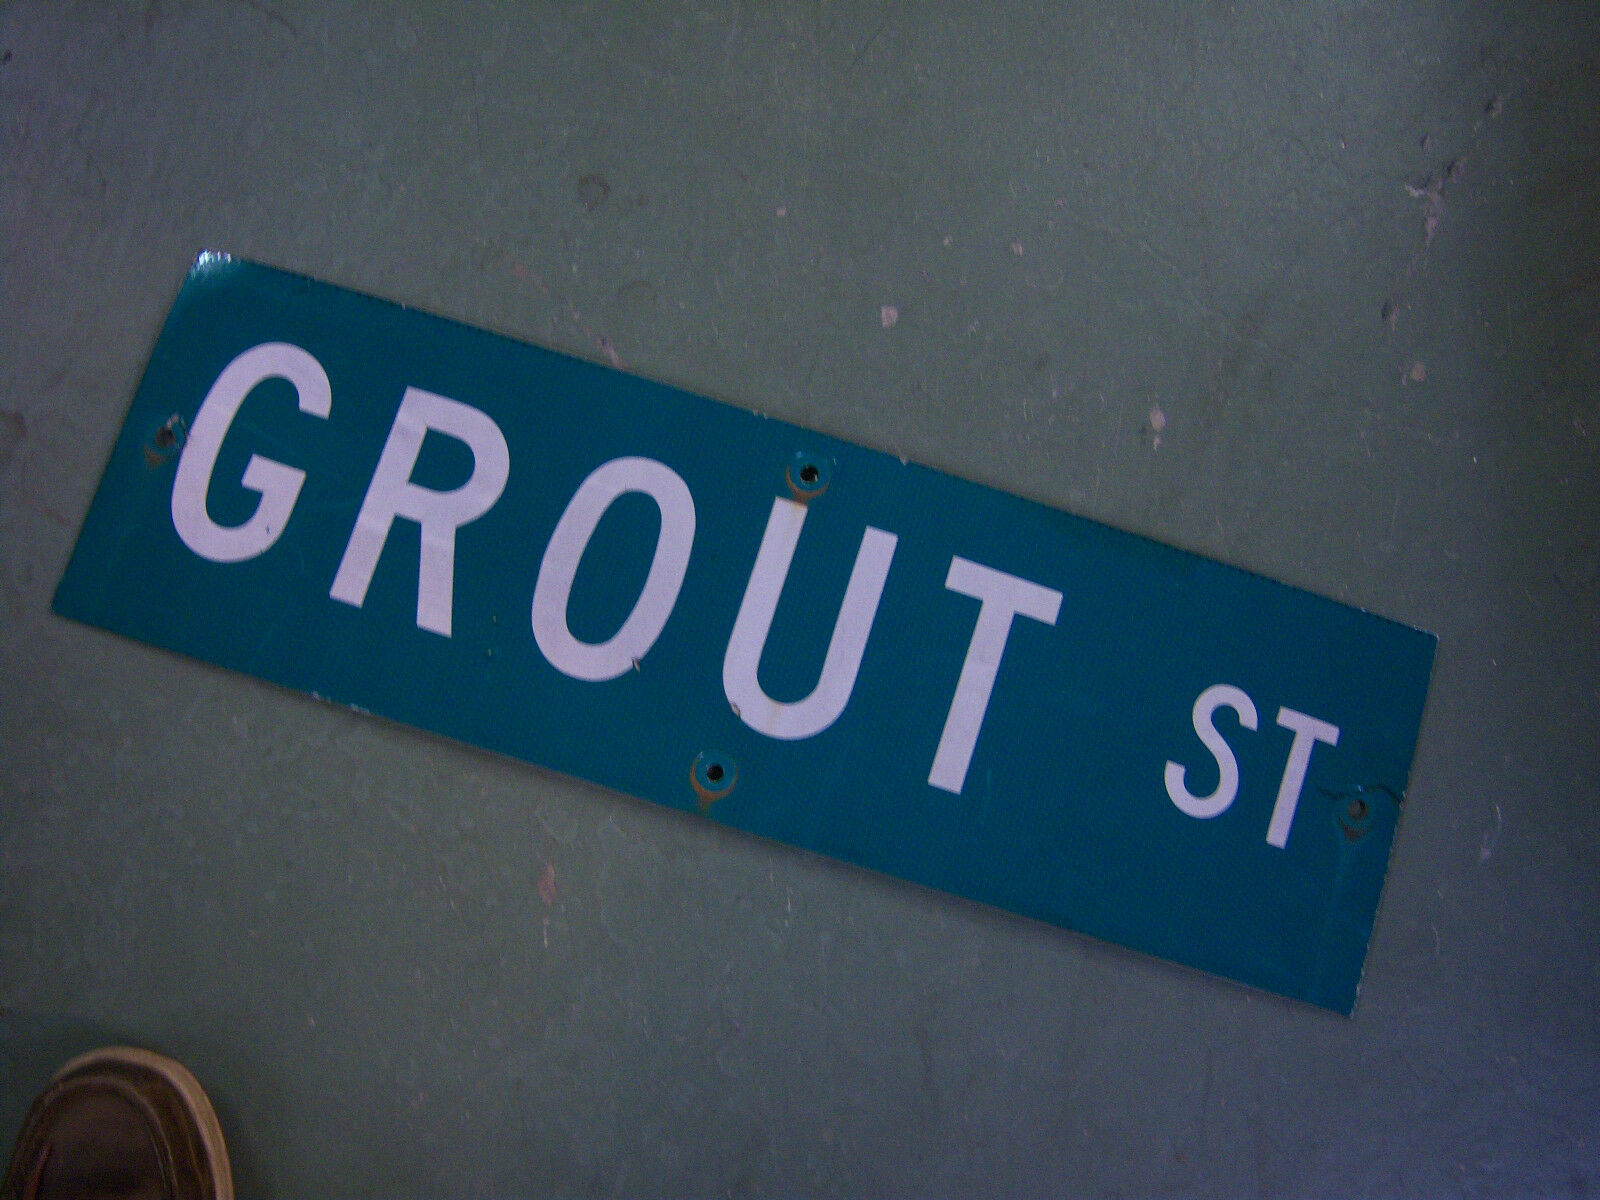 """Vintage ORIGINAL GROUT ST STREET SIGN 30"""" X 9"""" WHITE LETTERING ON GREEN"""